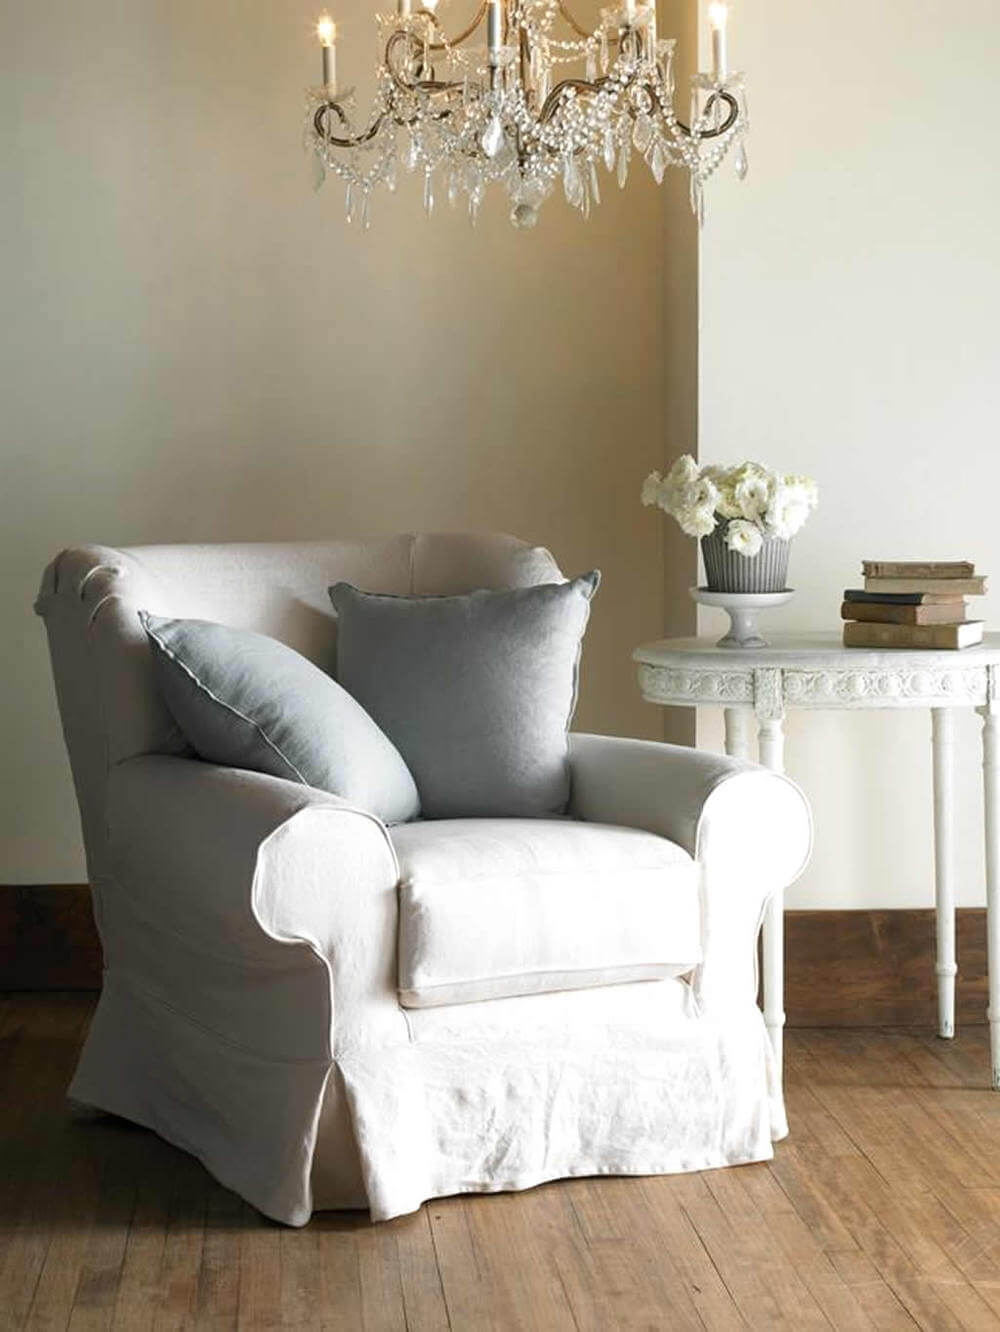 How To Welcome Shabby Chic Decor In Your Home   Interior Pertaining To Shabby Chic Sofas (View 12 of 15)